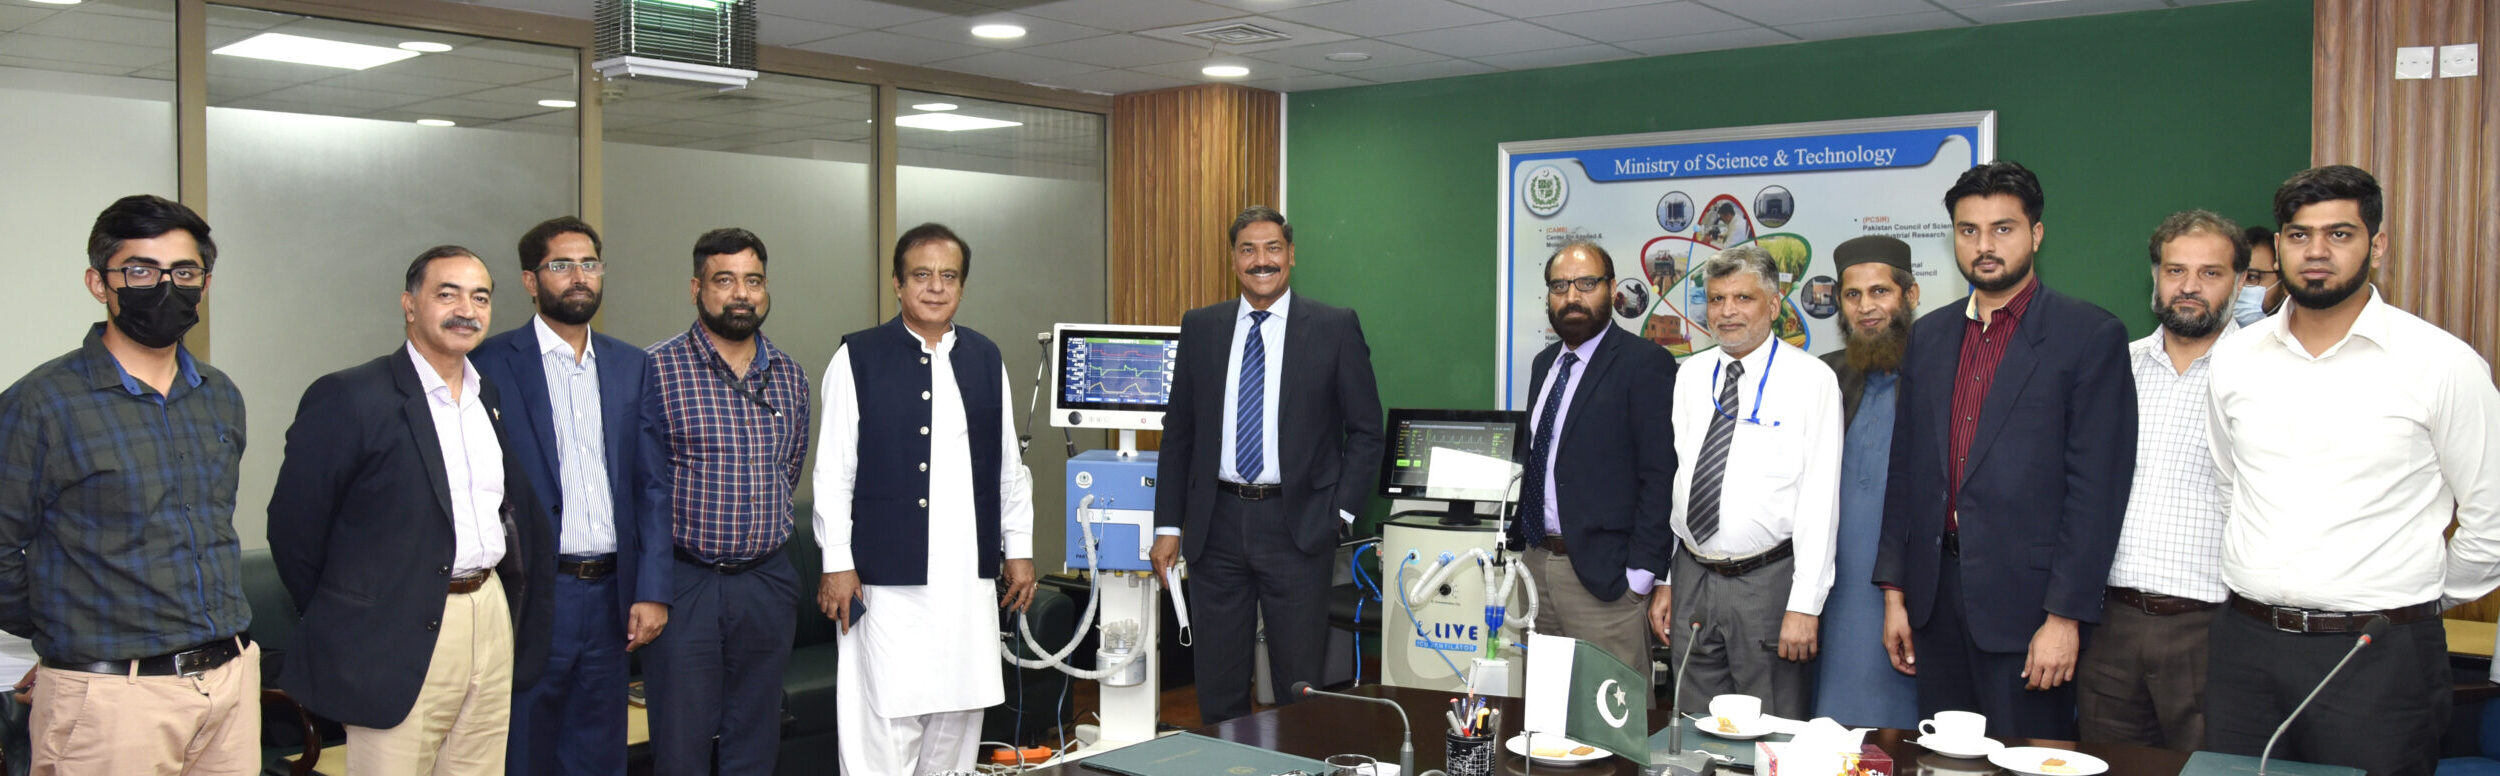 Figure 3: PITC Team and PAEC Team with Shibli Faraz, Federal Minister for Science and Technology at MoST office.